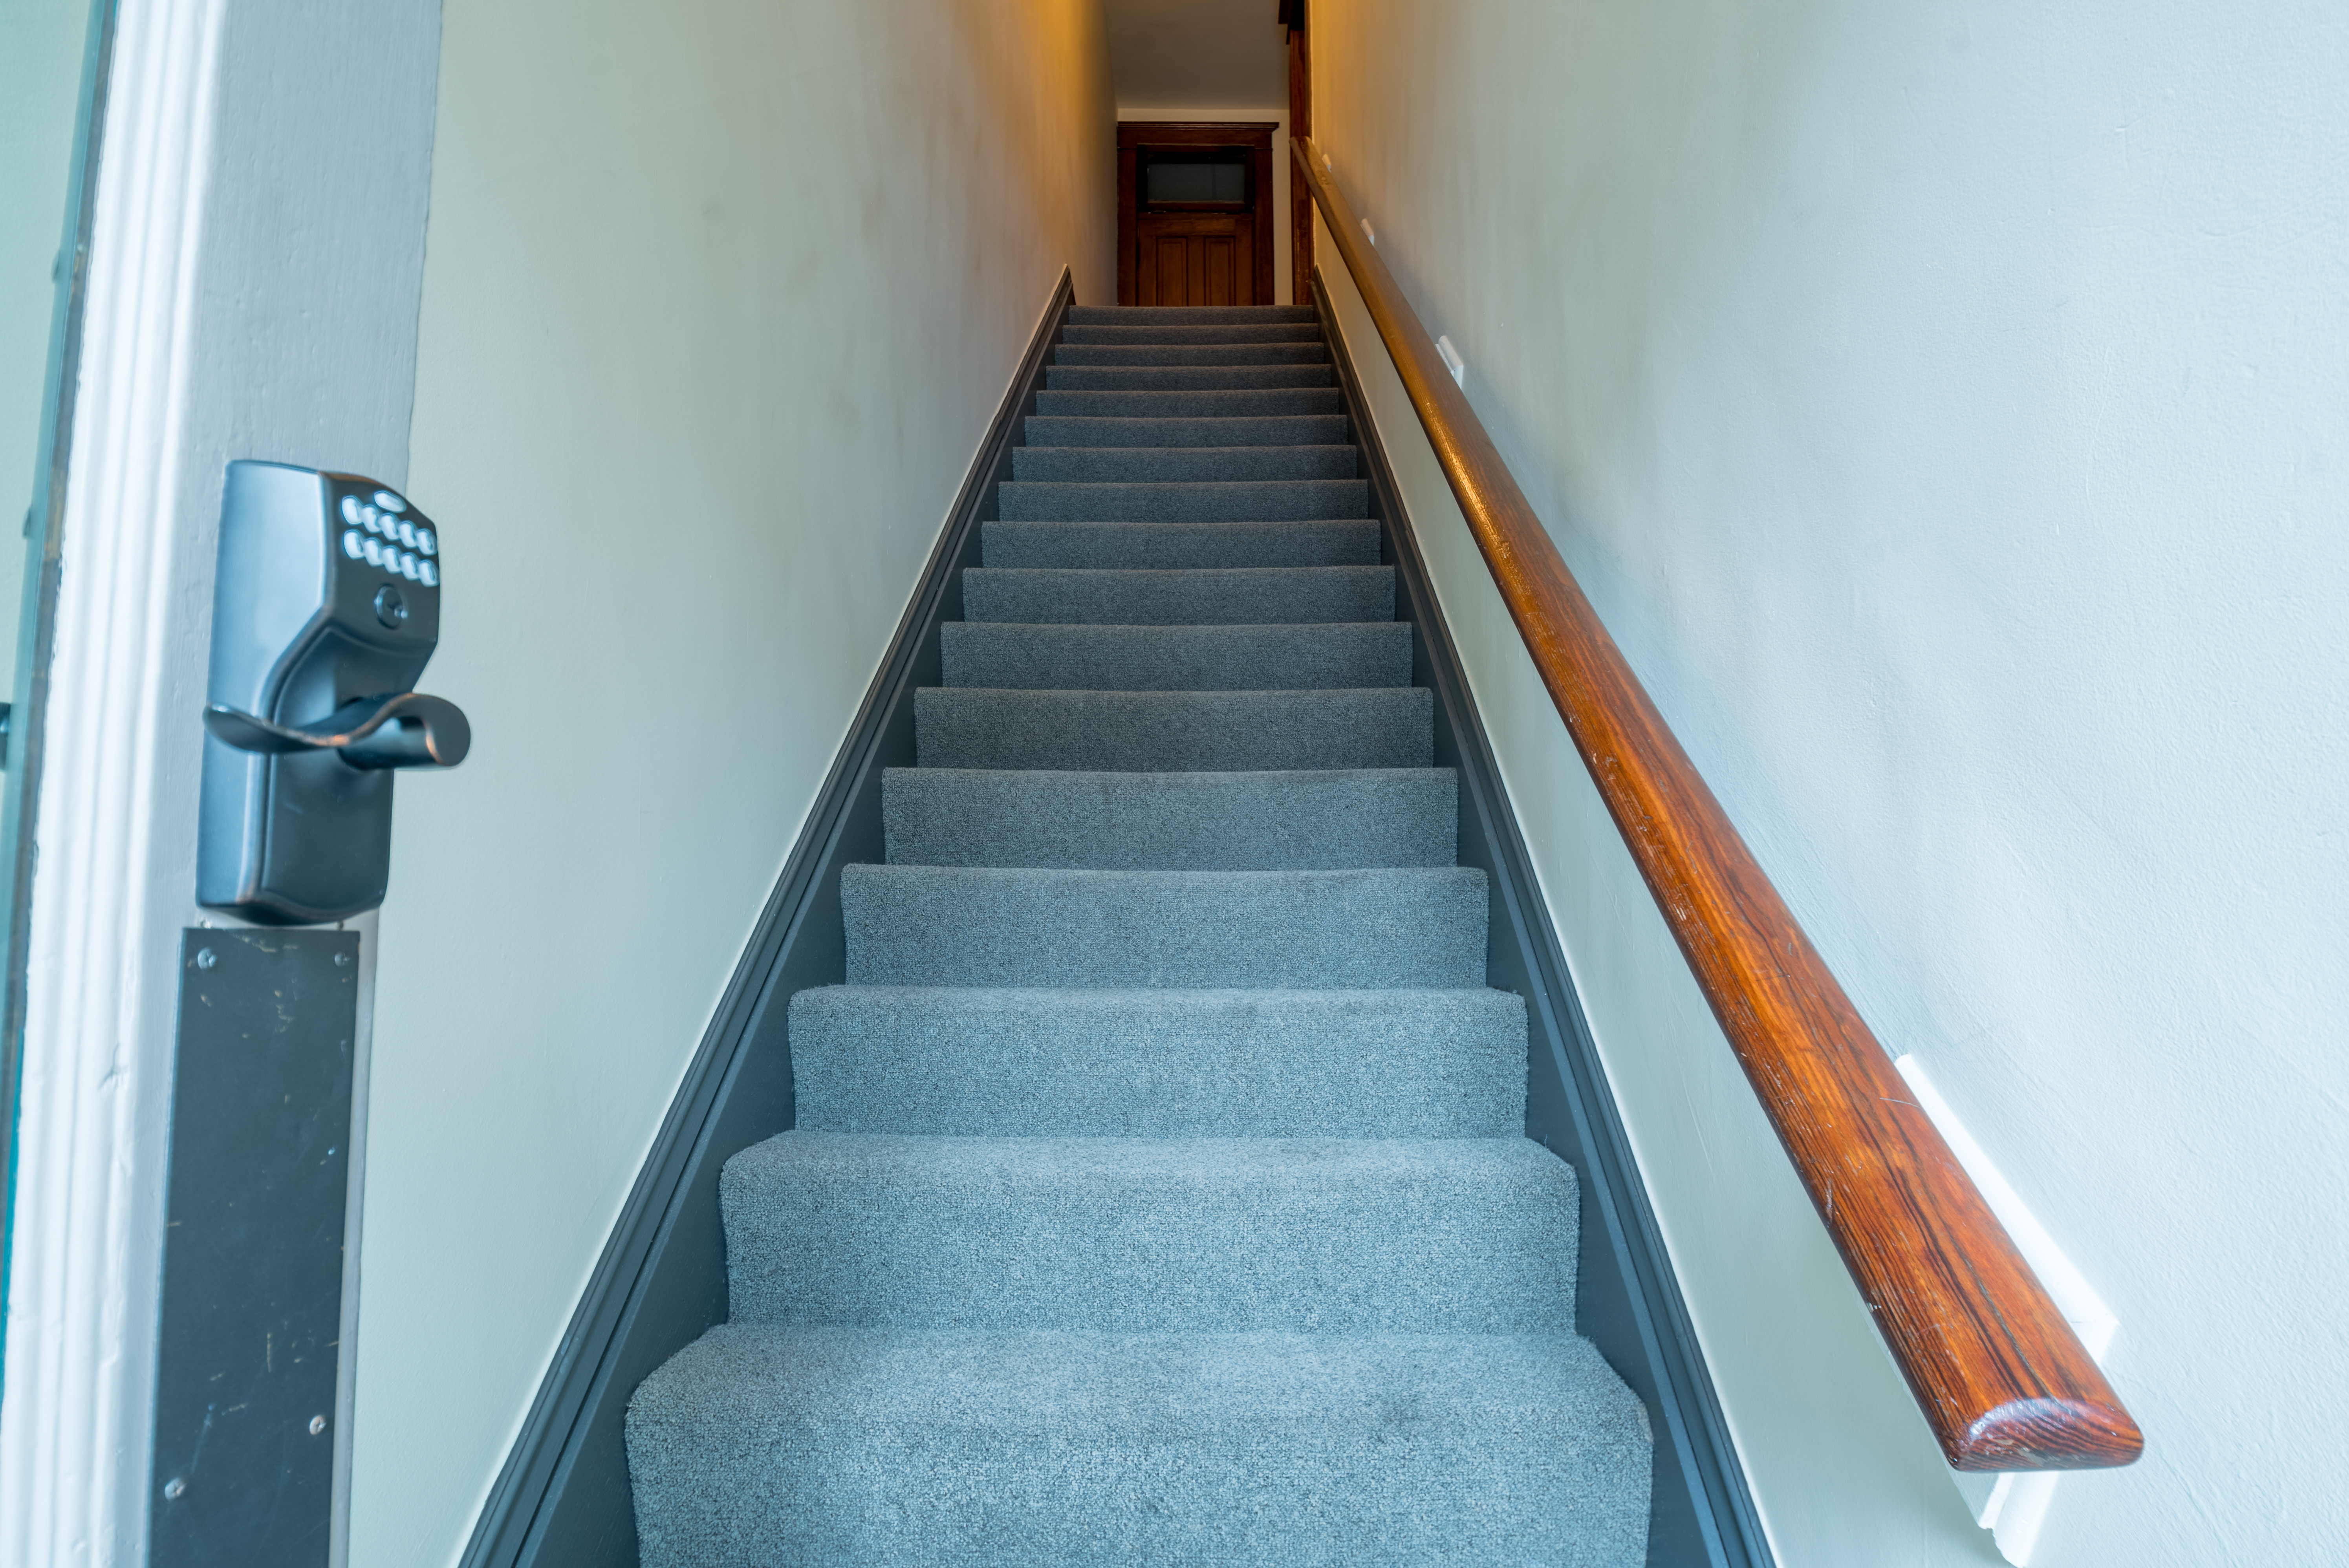 Private stairway leading to studio. Securely locks with code